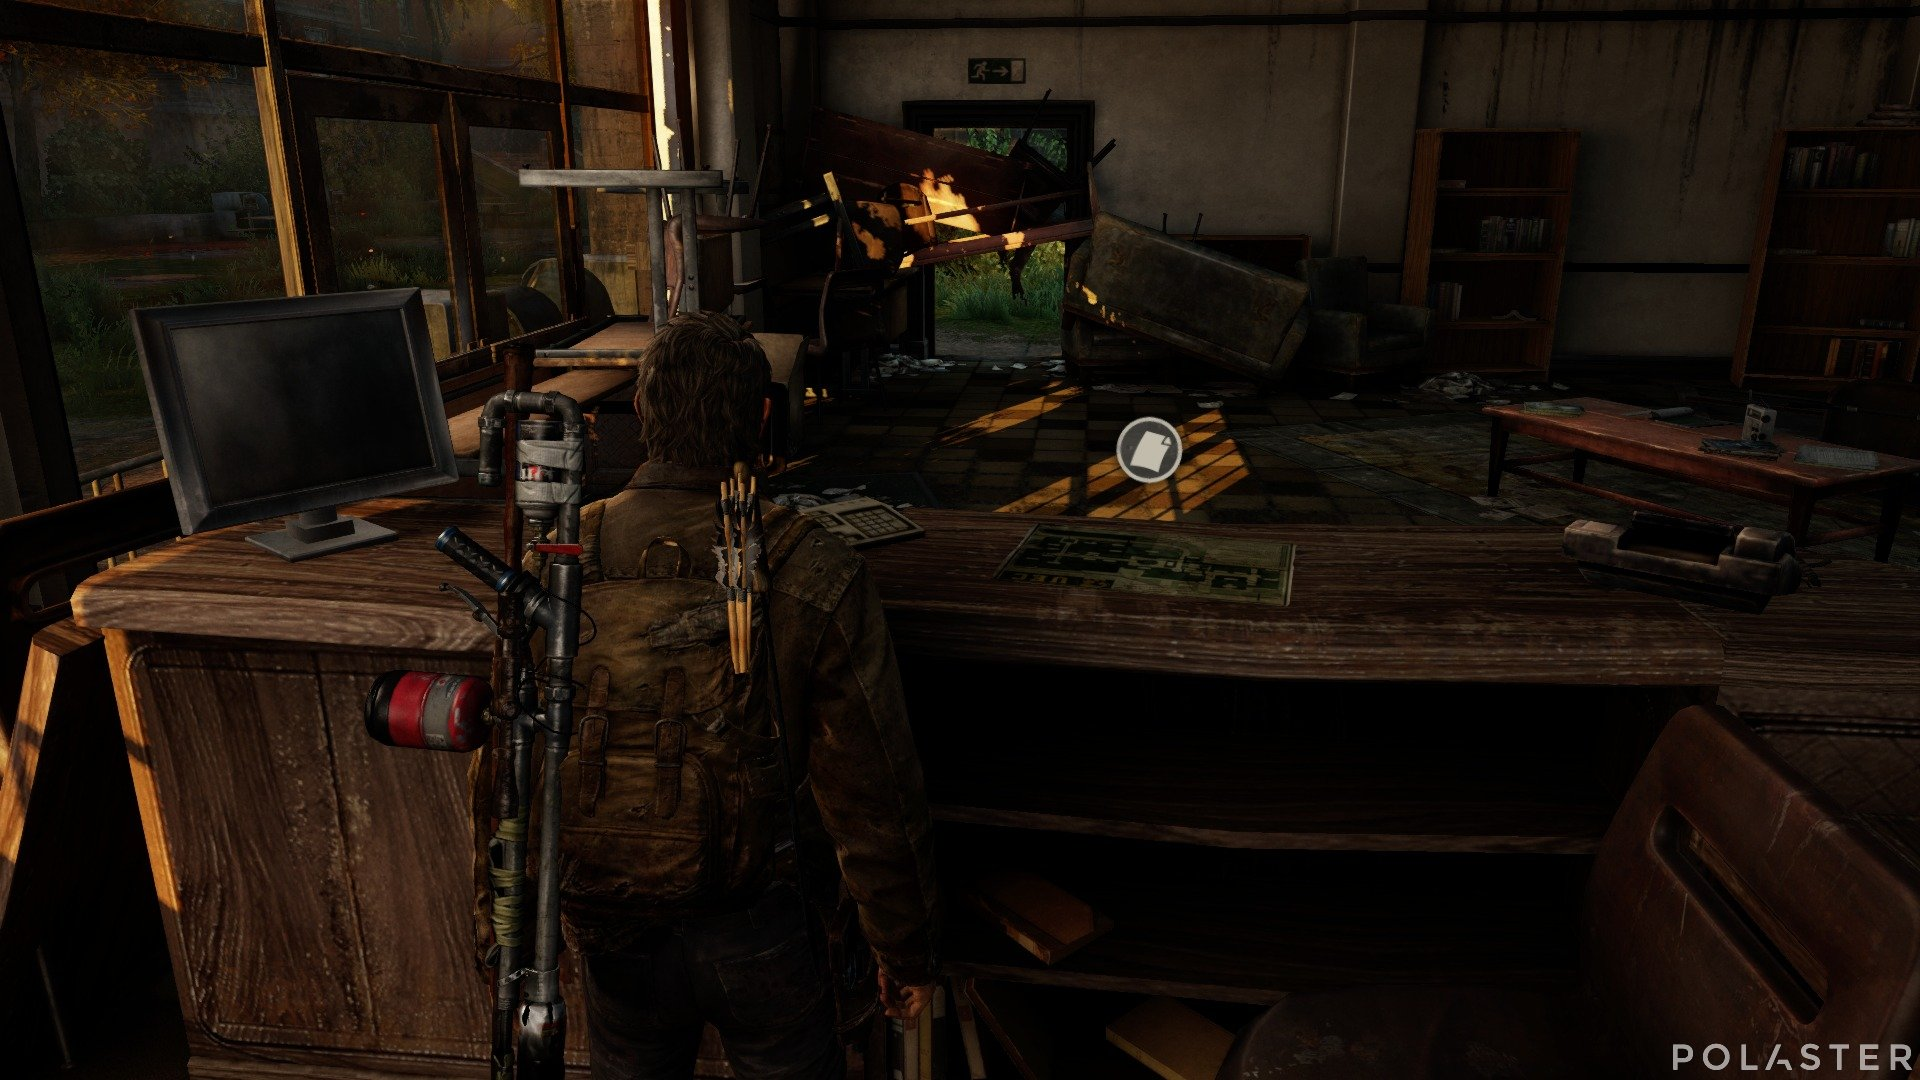 The Last of Us Artefacto Mapa del campus de la UEC